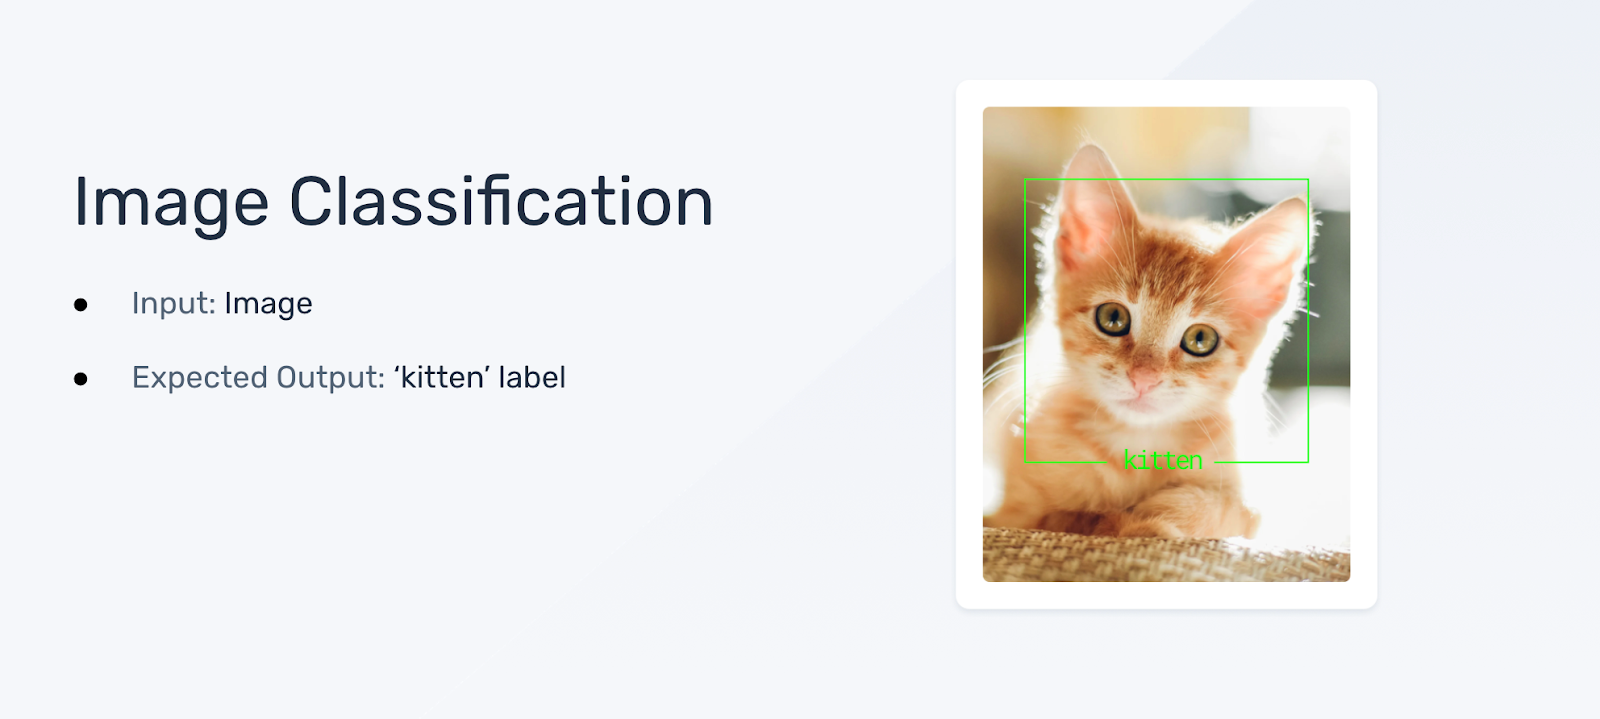 An image of a kitten as the input, and the label 'kitten' as the expected output.